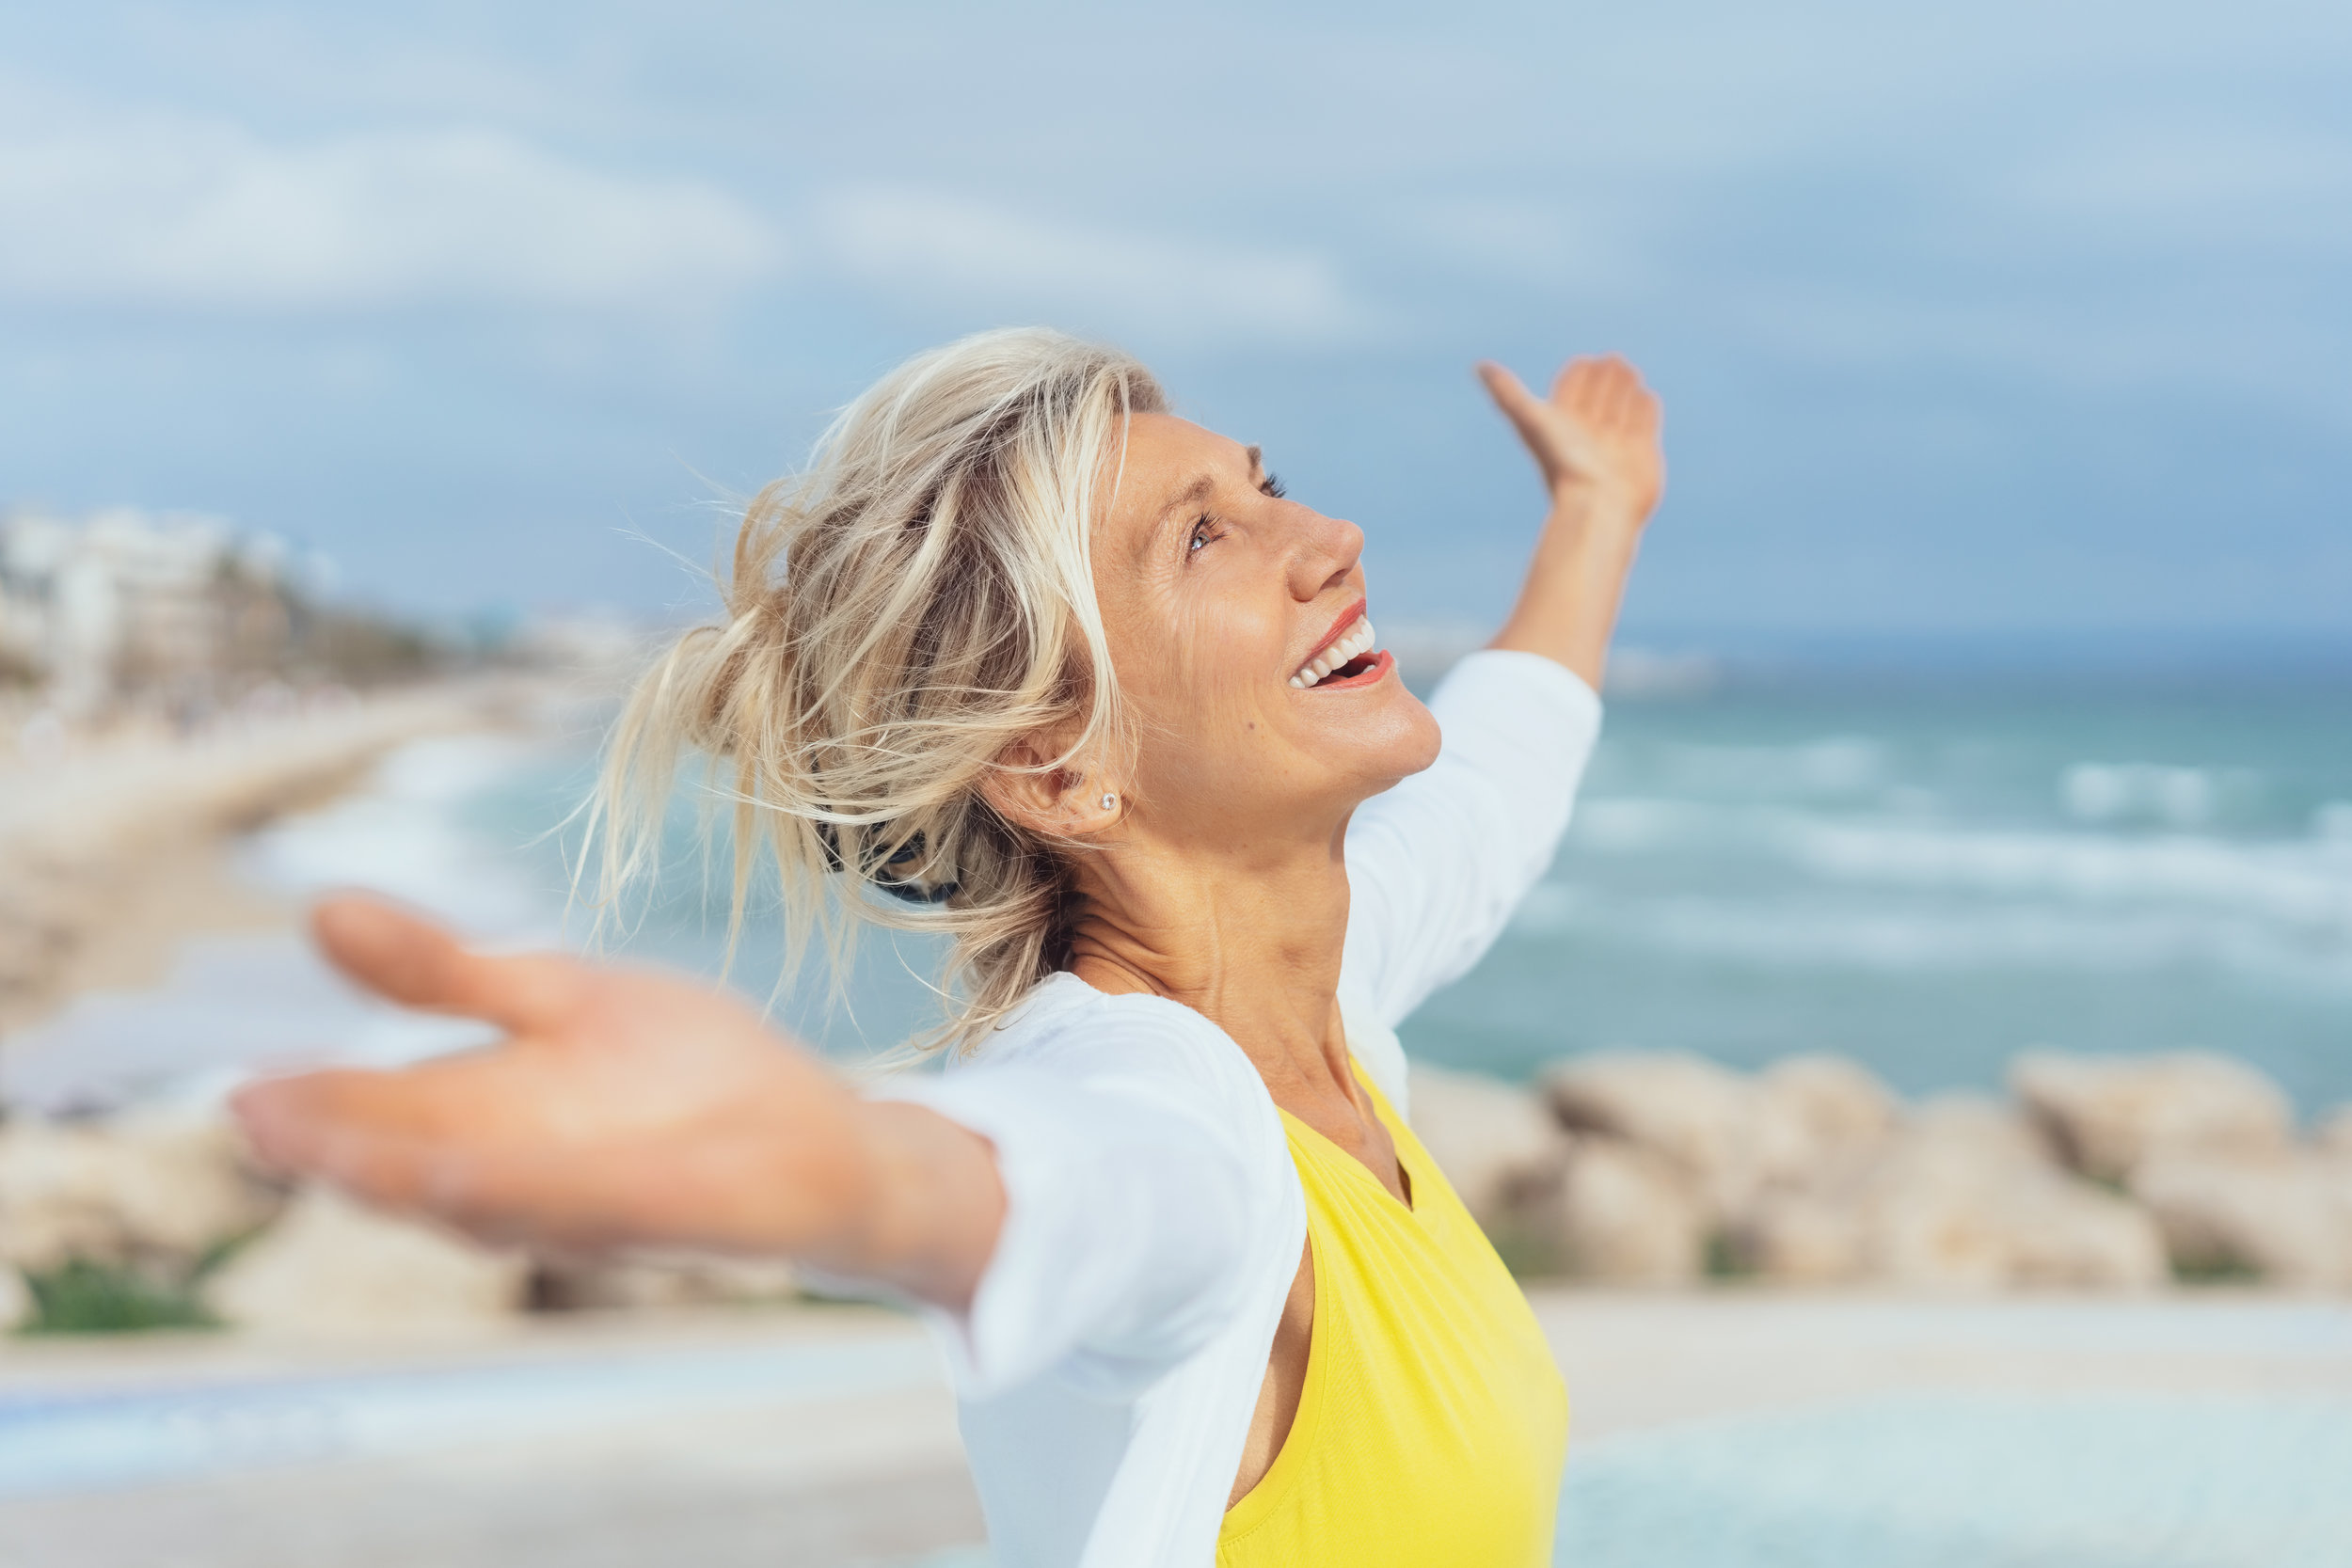 woman outstretched arms shutterstock_1115755928.jpg